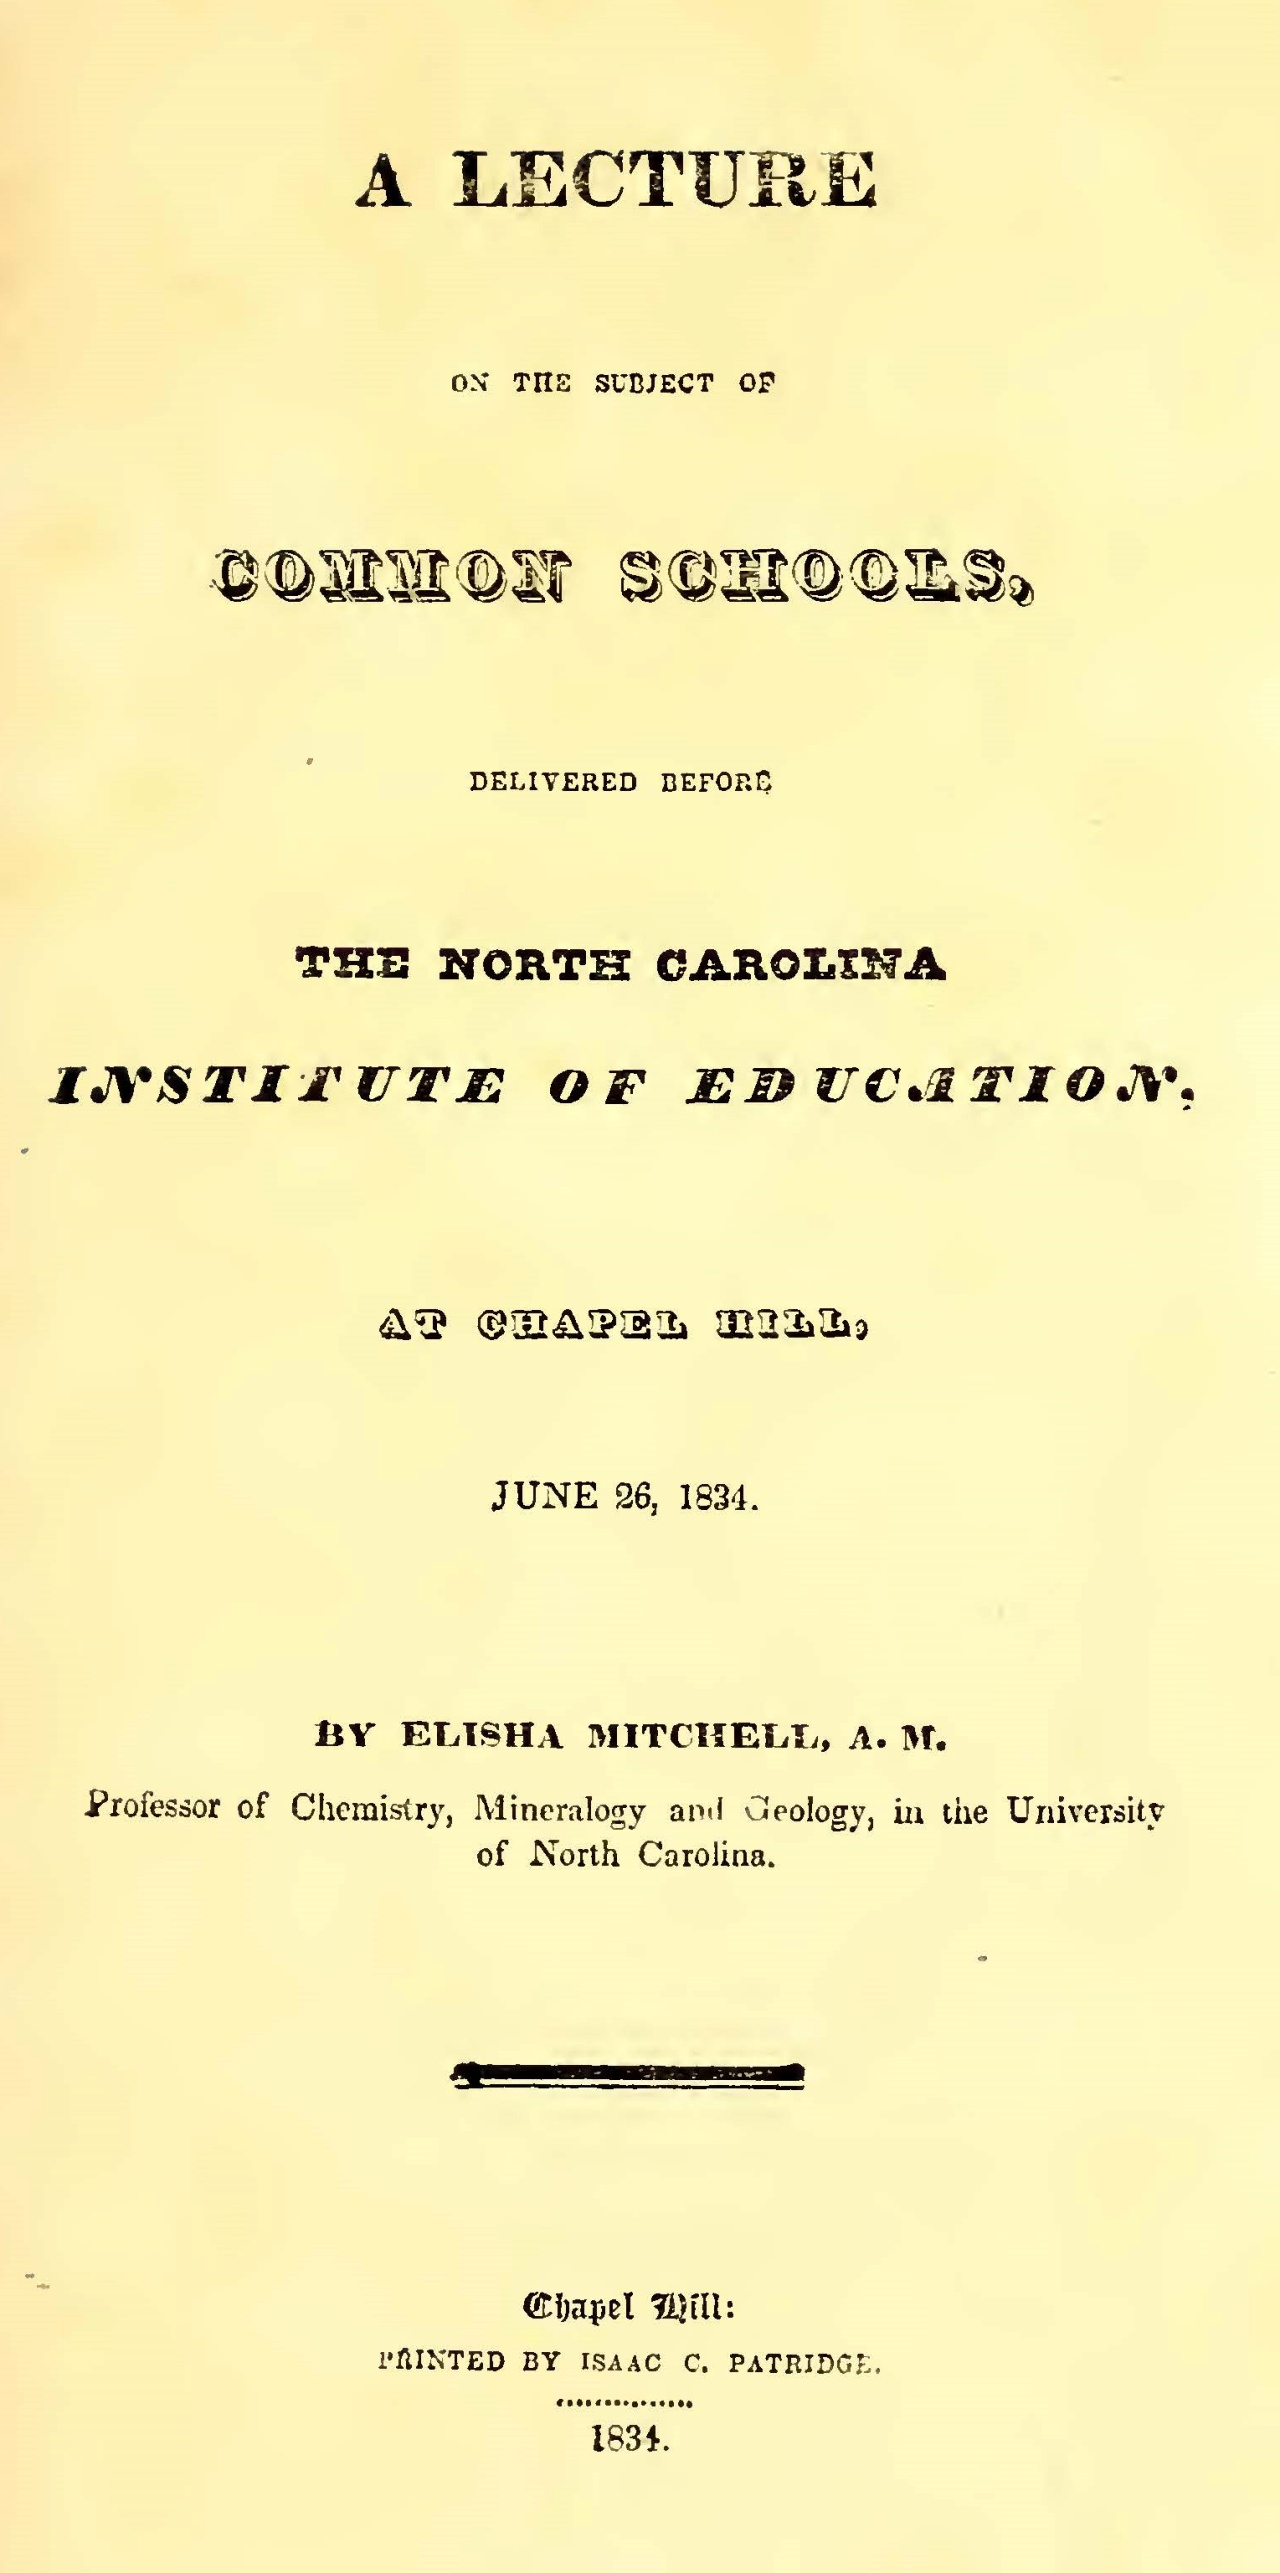 Mitchell, Elisha, A Lecture on the Subject of Common Schools Title Page.jpg